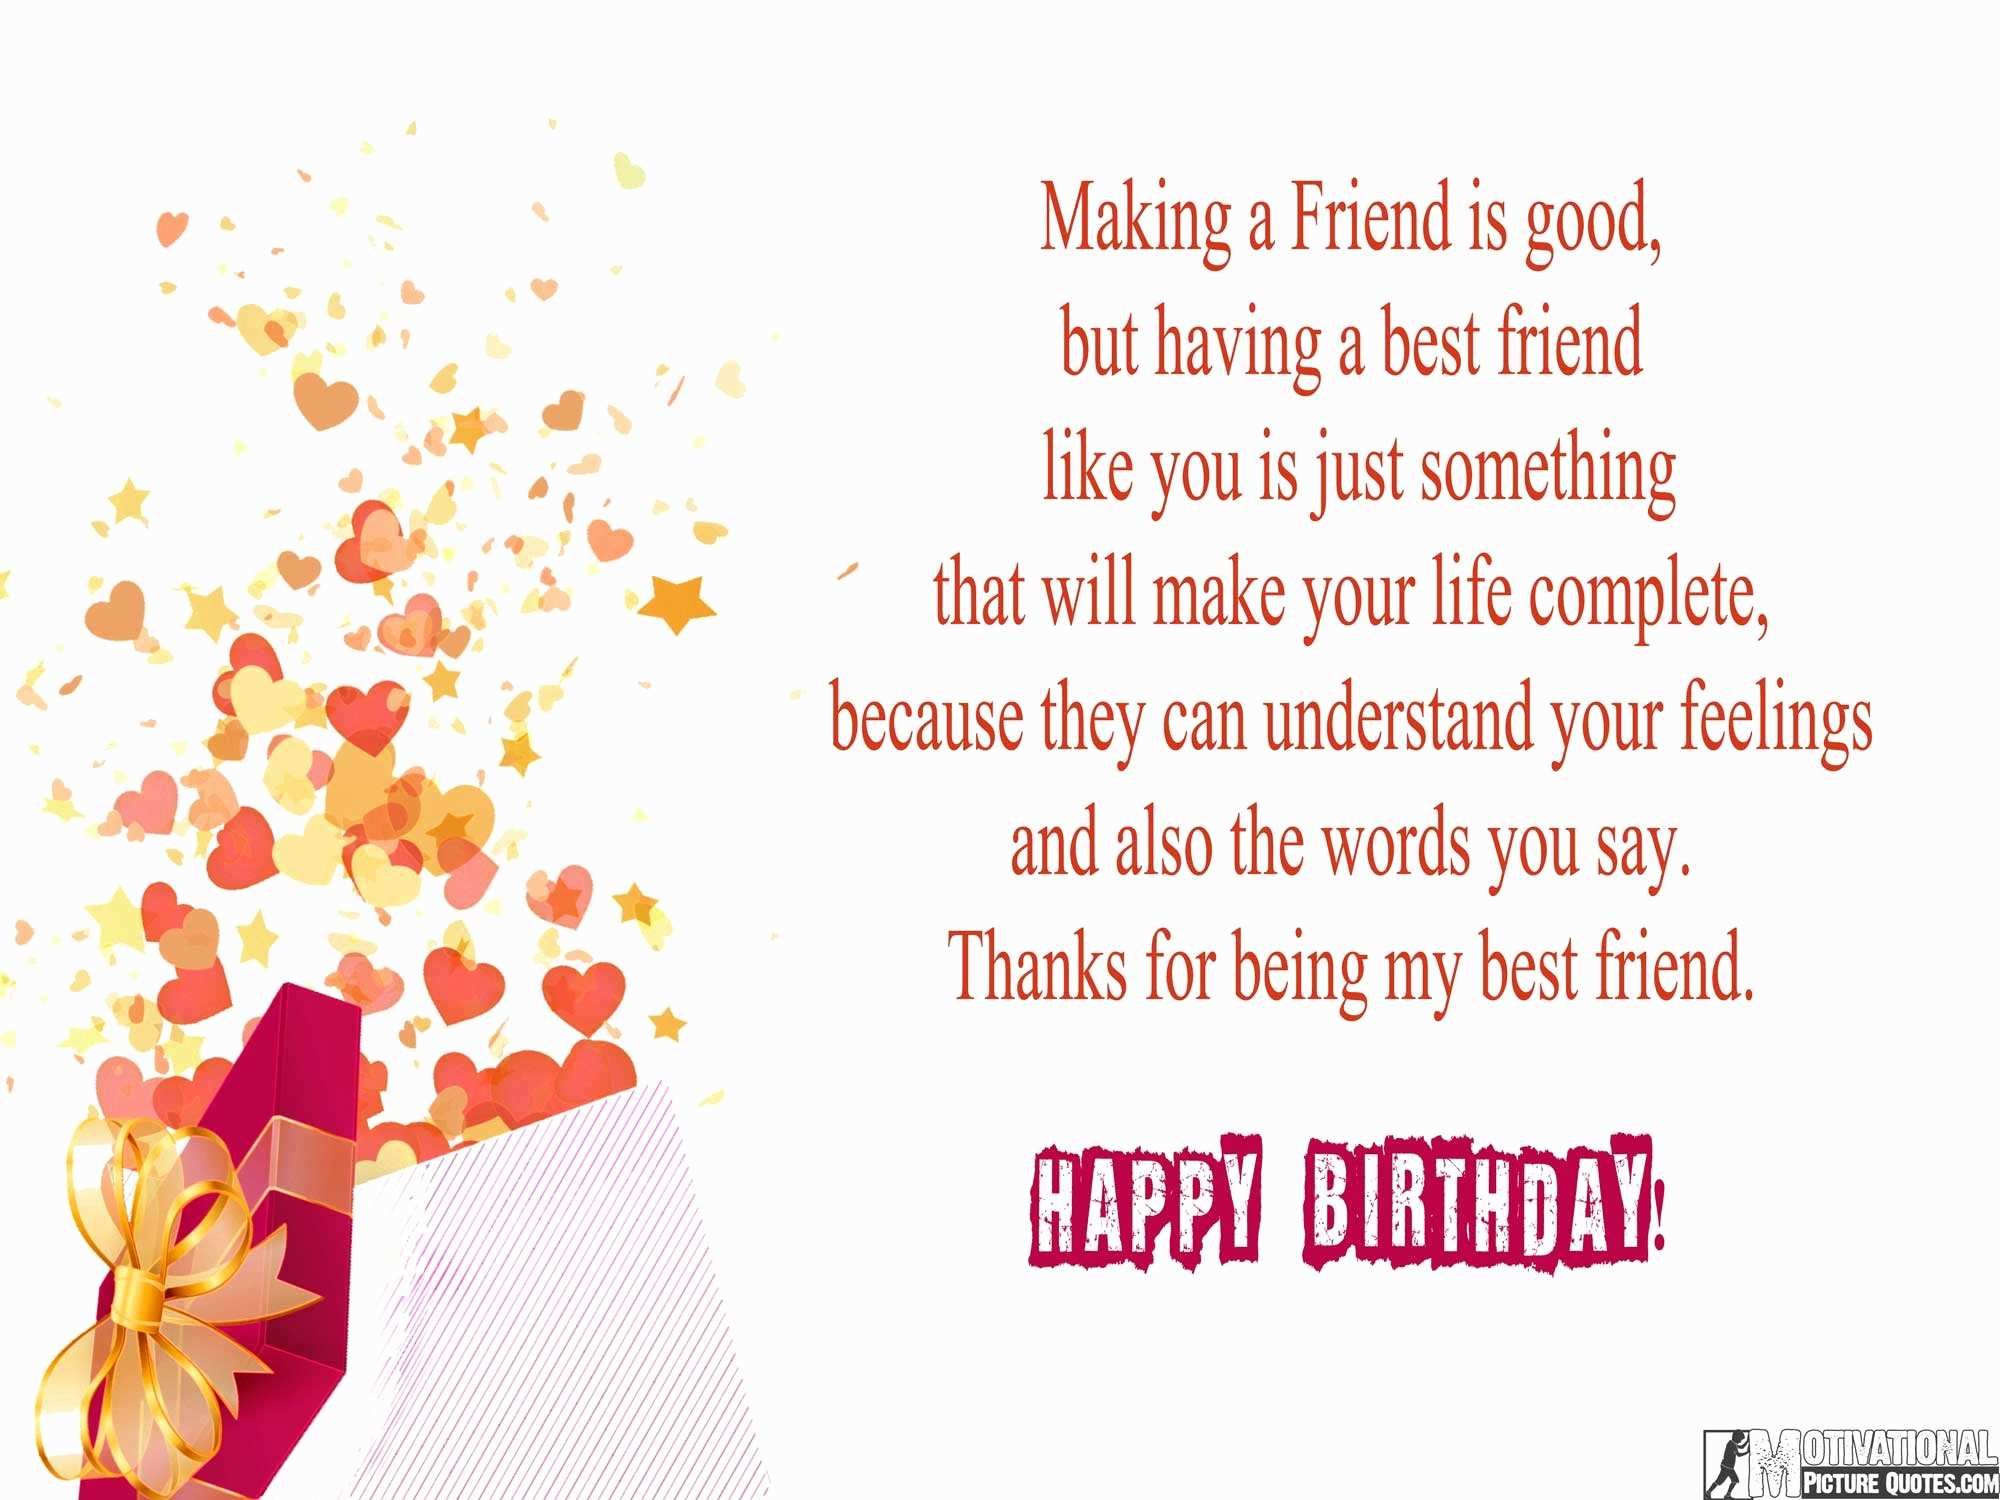 birthday message to mentor ; religious-birthday-wishes-for-a-friend-luxury-happy-birthday-wishes-to-mentor-best-birthday-message-for-friend-of-religious-birthday-wishes-for-a-friend